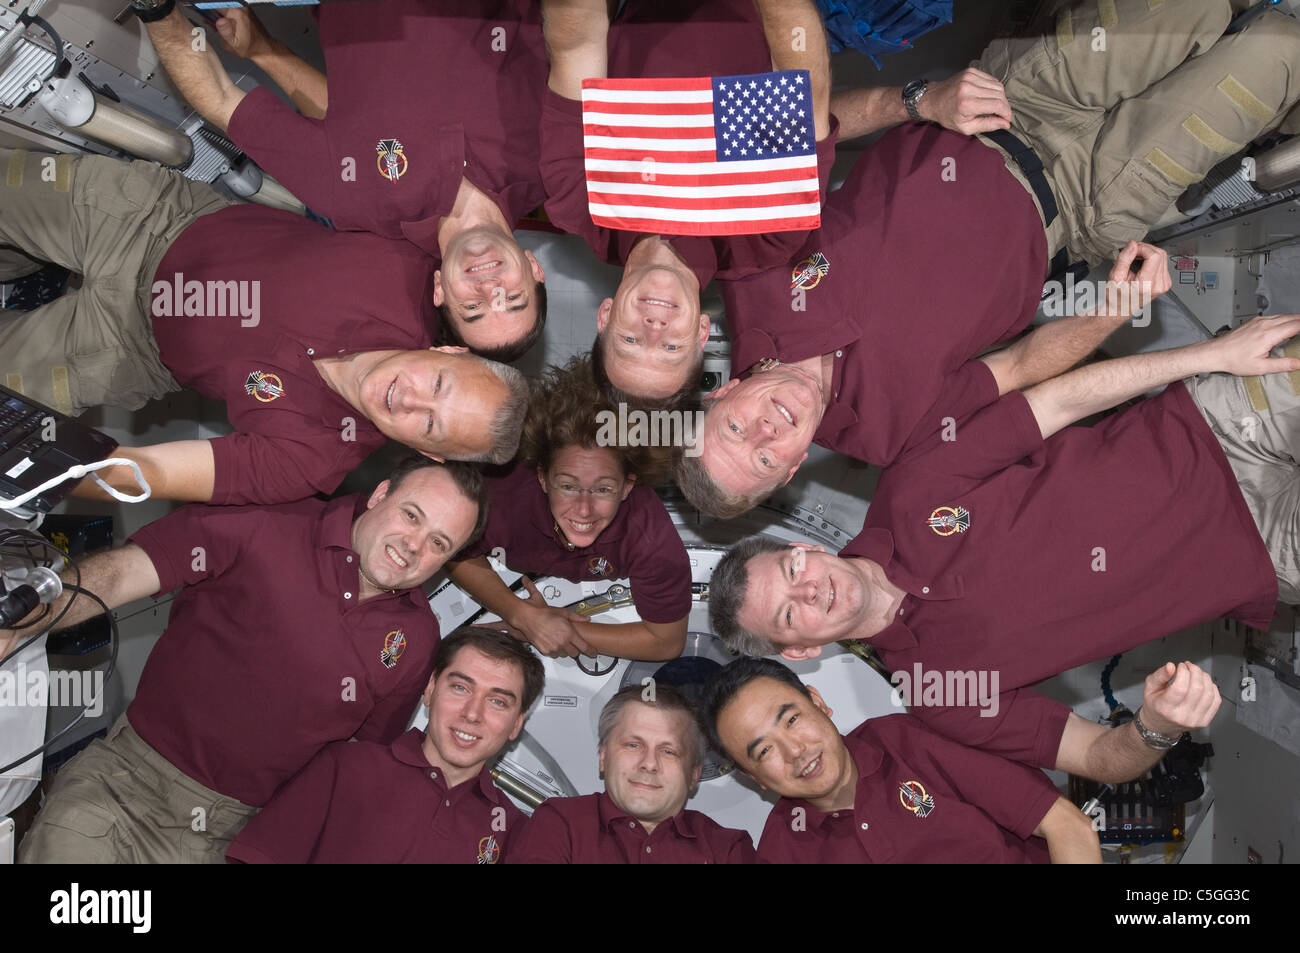 Atlantis space shuttle crew poses with the crew of the International Space Station on the final shuttle flight. - Stock Image